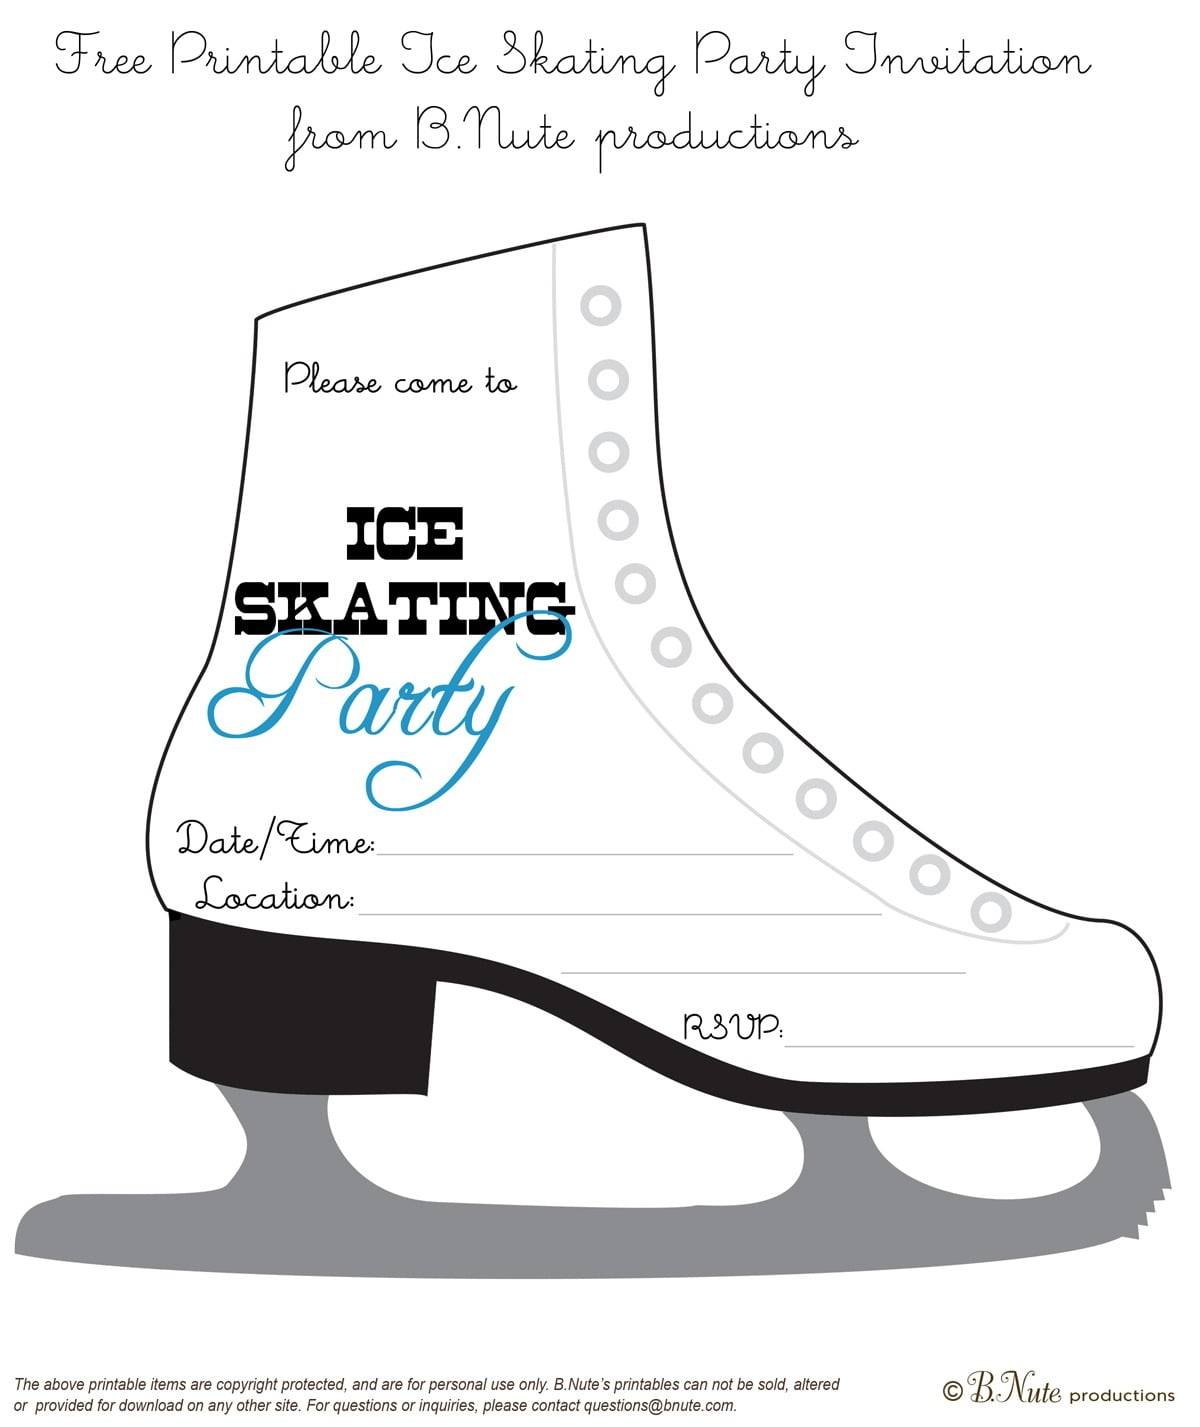 Bnute Productions  Free Printable Ice Skating Party Invitation